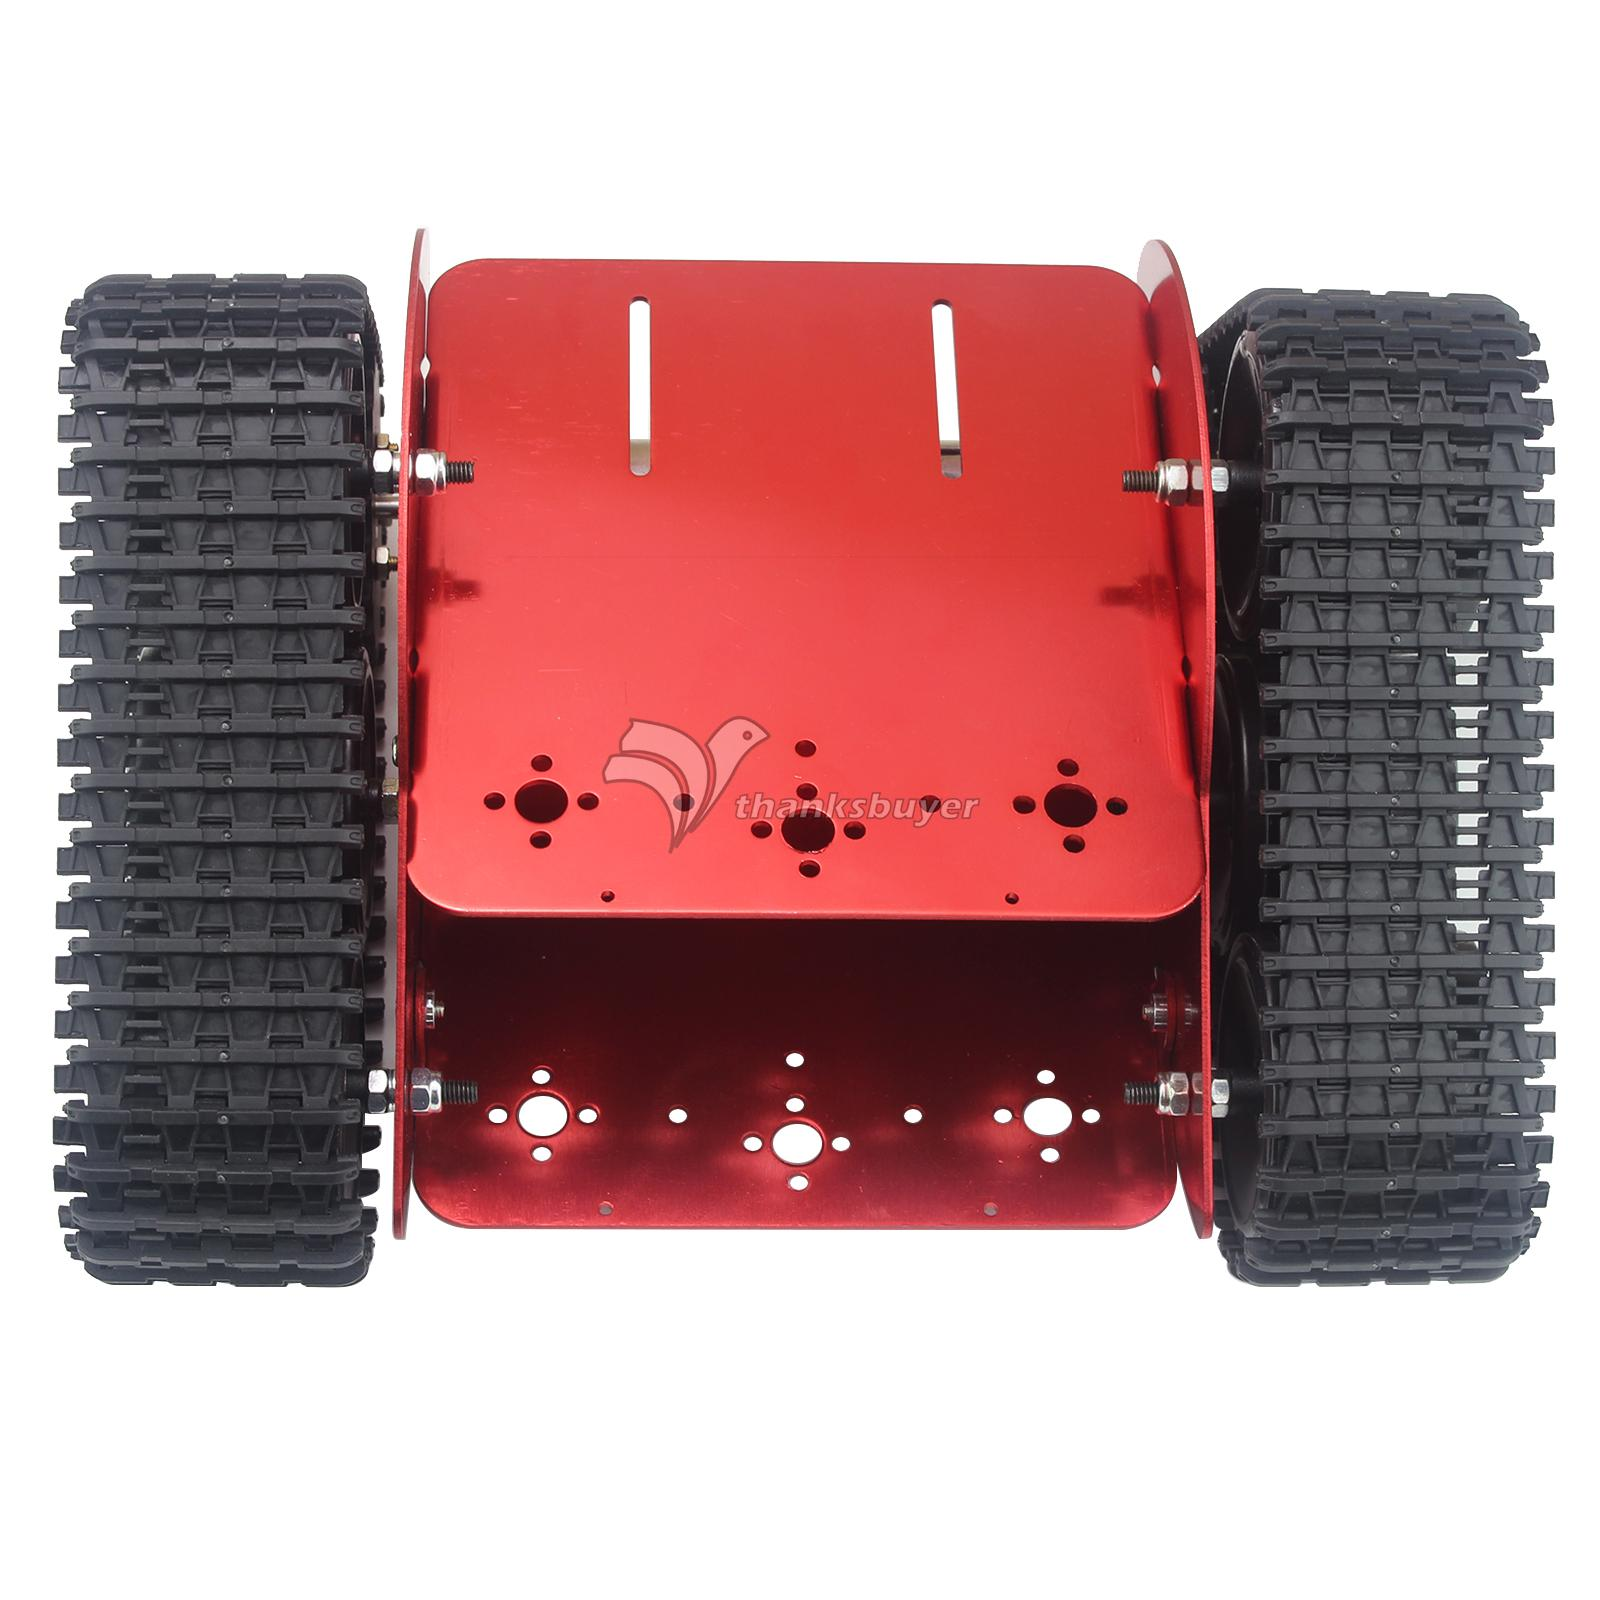 TZTROT-6 Red Tracked Vehicle Tank Chassis Crawler Remote Control Robot Car with DC Motor for Arduino tztrot 6 red tracked vehicle tank chassis crawler remote control robot car with dc motor for arduino